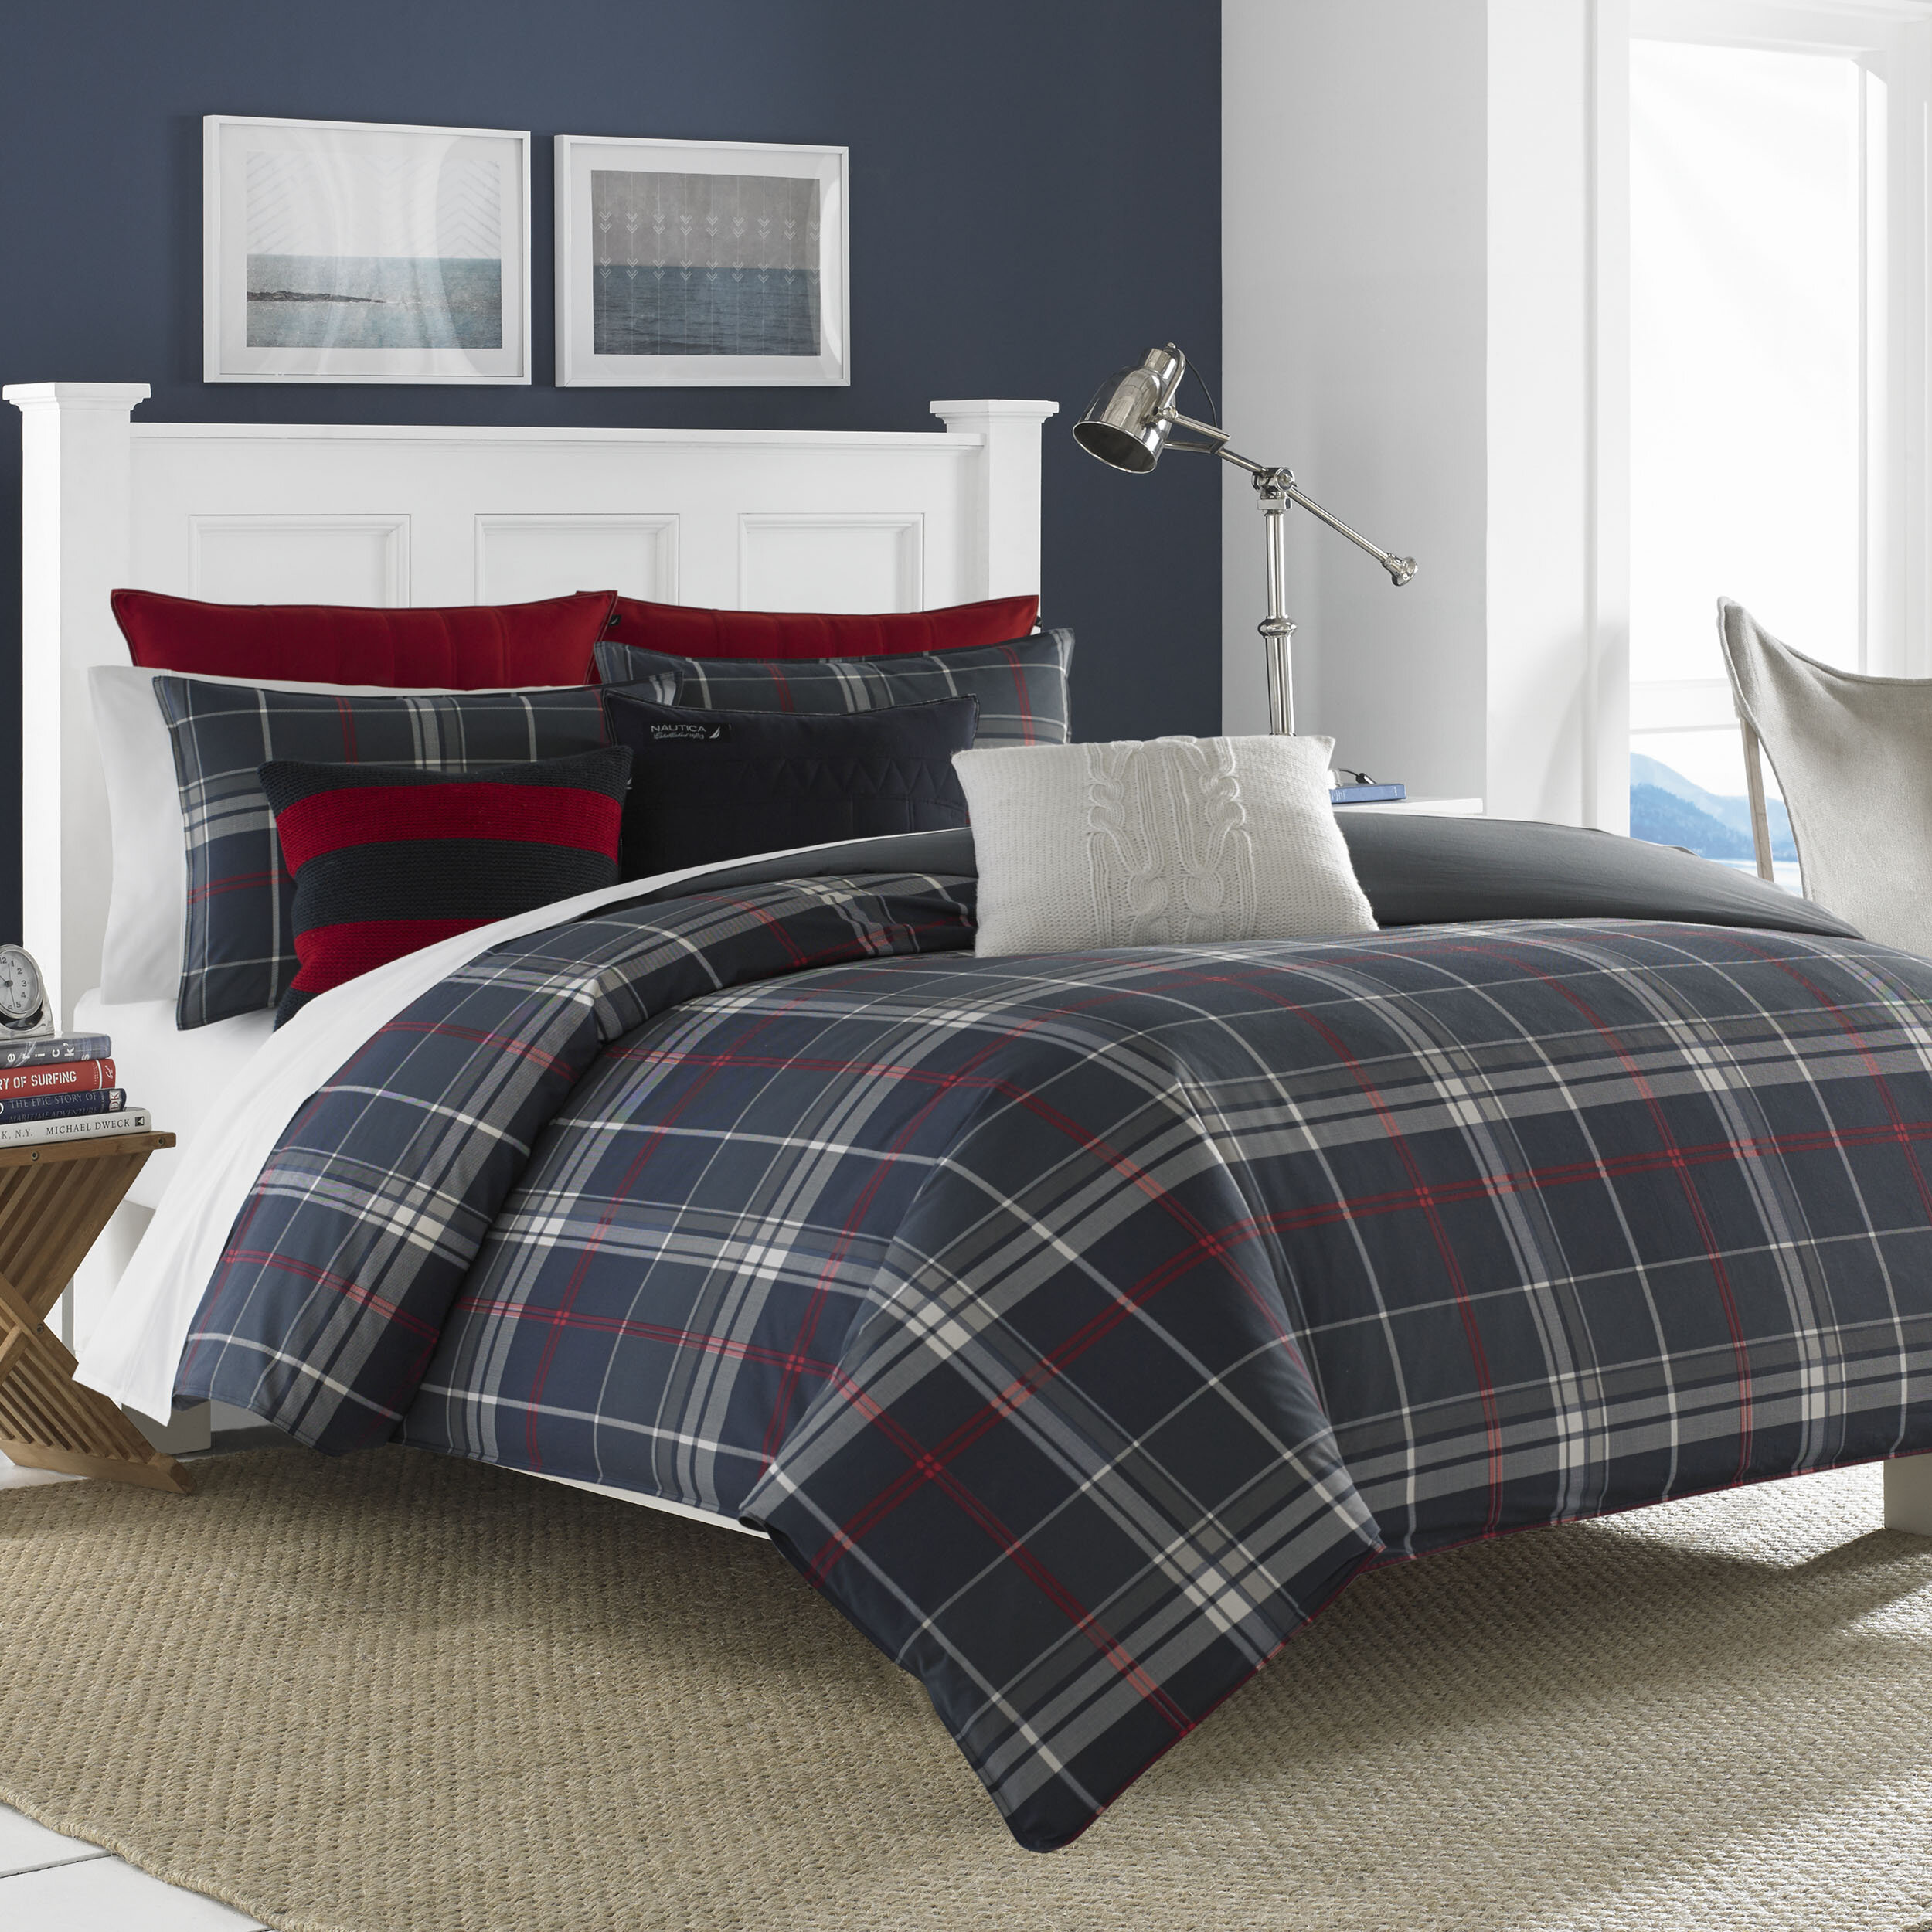 comforter decorating lostcoastshuttle ideas plaid size red and black set queen fantastic bed